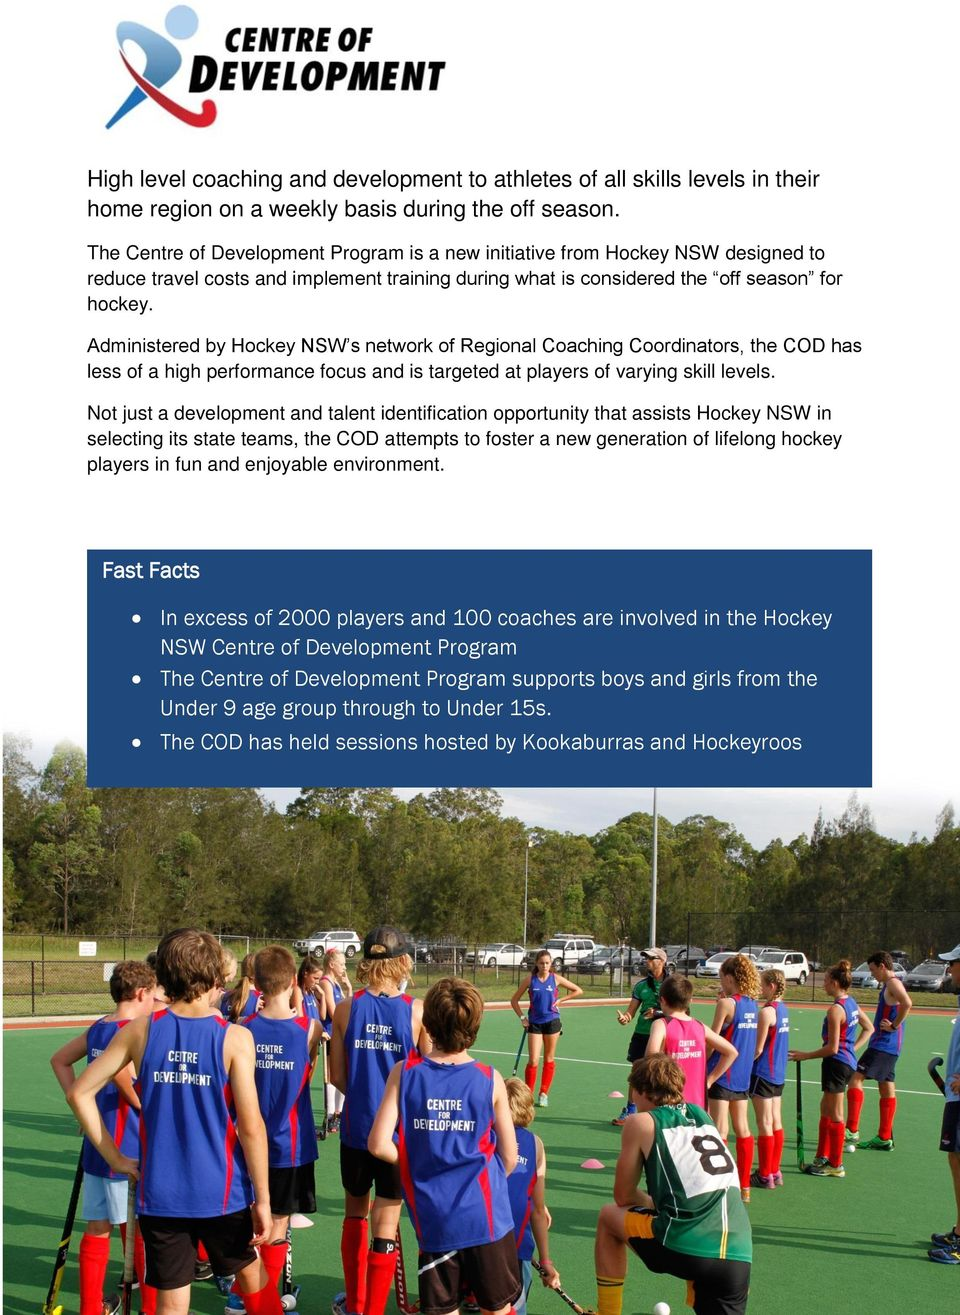 Administered by Hockey NSW s network of Regional Coaching Coordinators, the COD has less of a high performance focus and is targeted at players of varying skill levels.